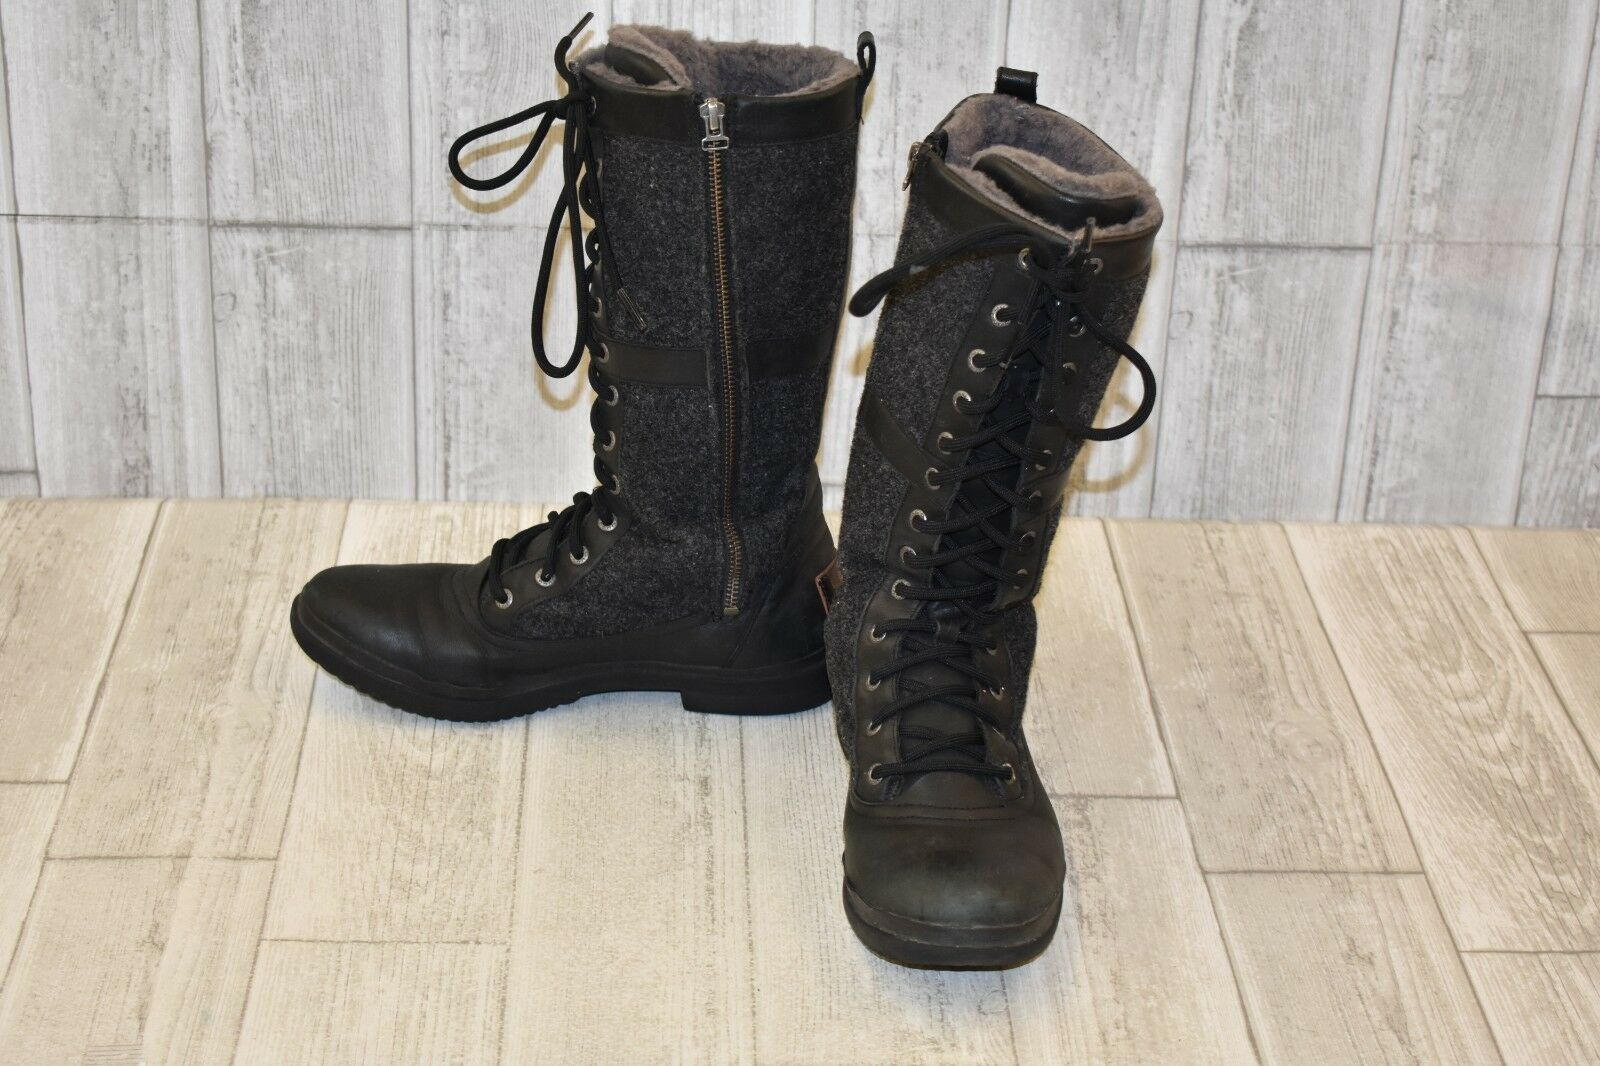 257120d5635 UGG Elvia Womens 1018473-blk Black Leather Textile Waterproof BOOTS Size 6